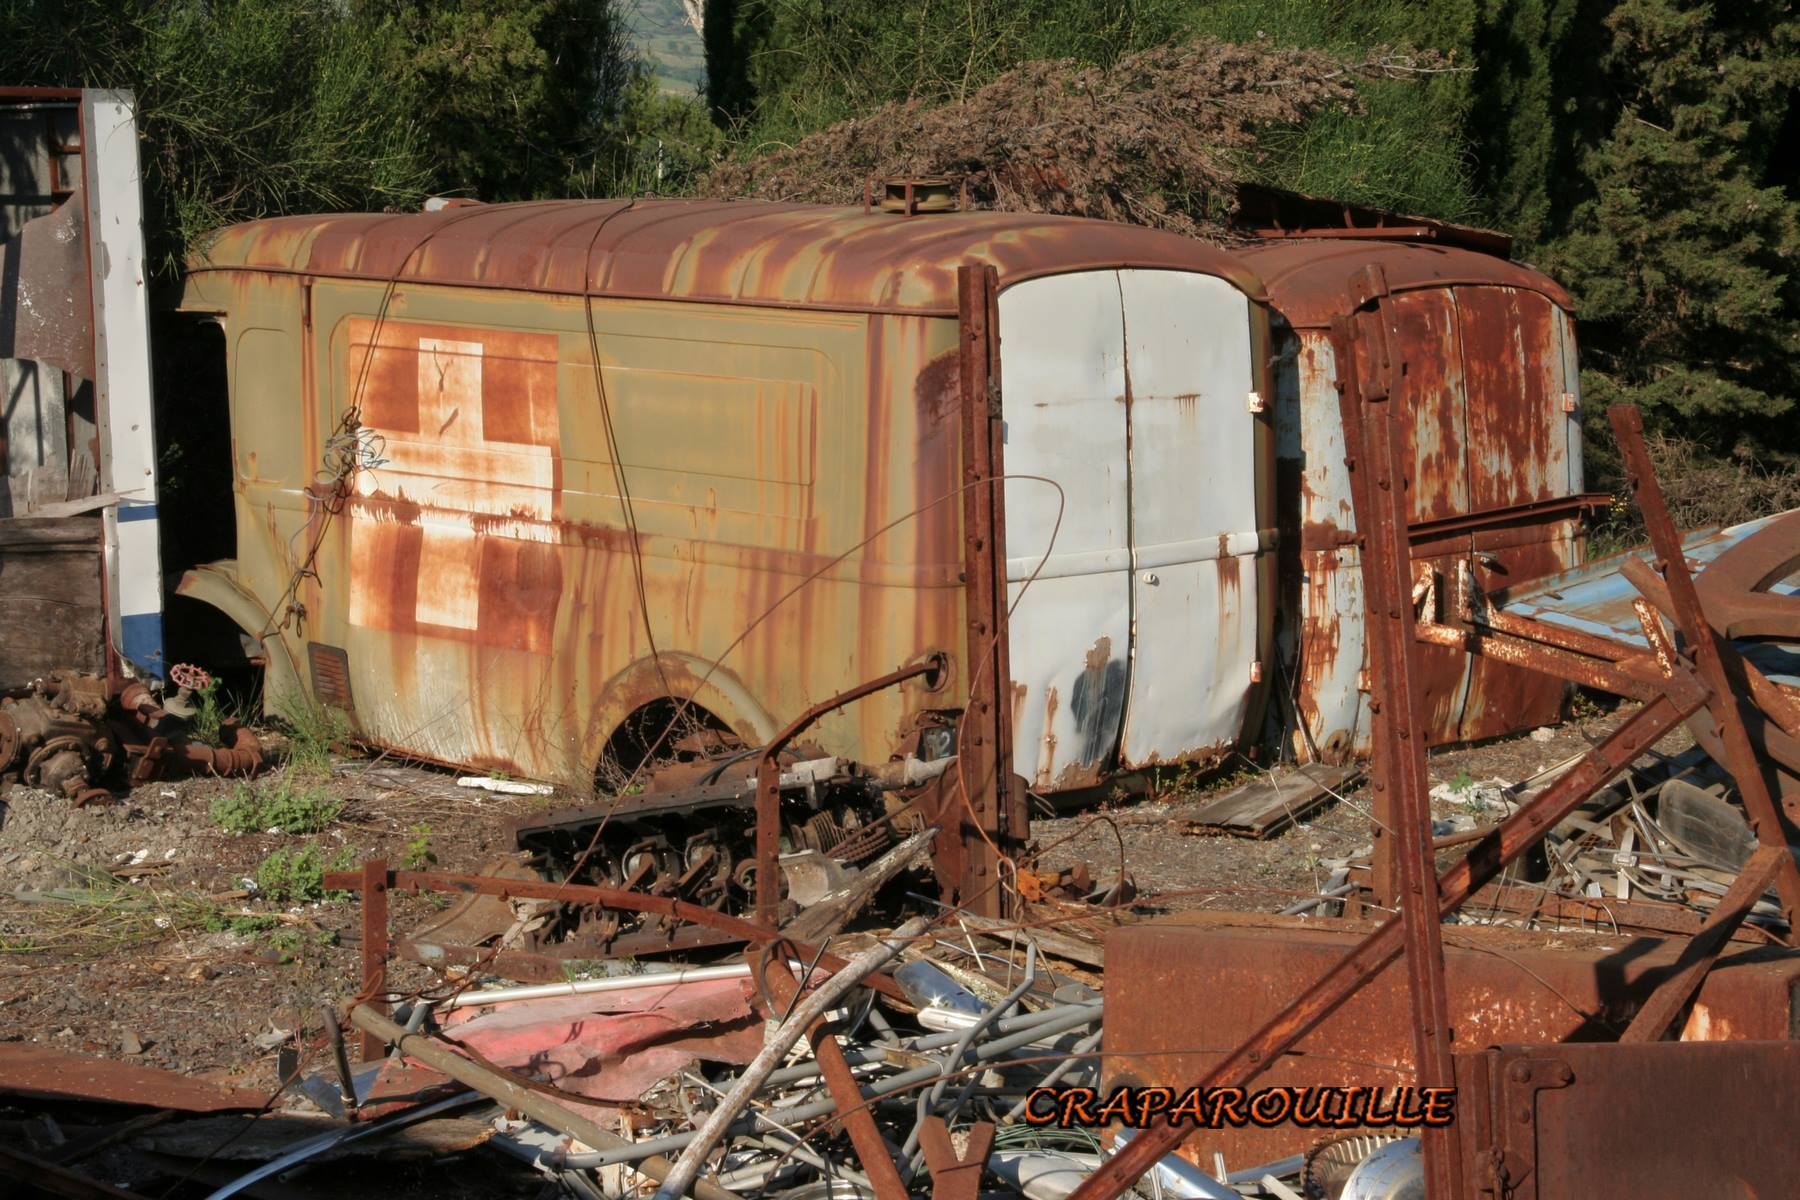 Photography-Diamonds-in-Rust-Craparouille-121